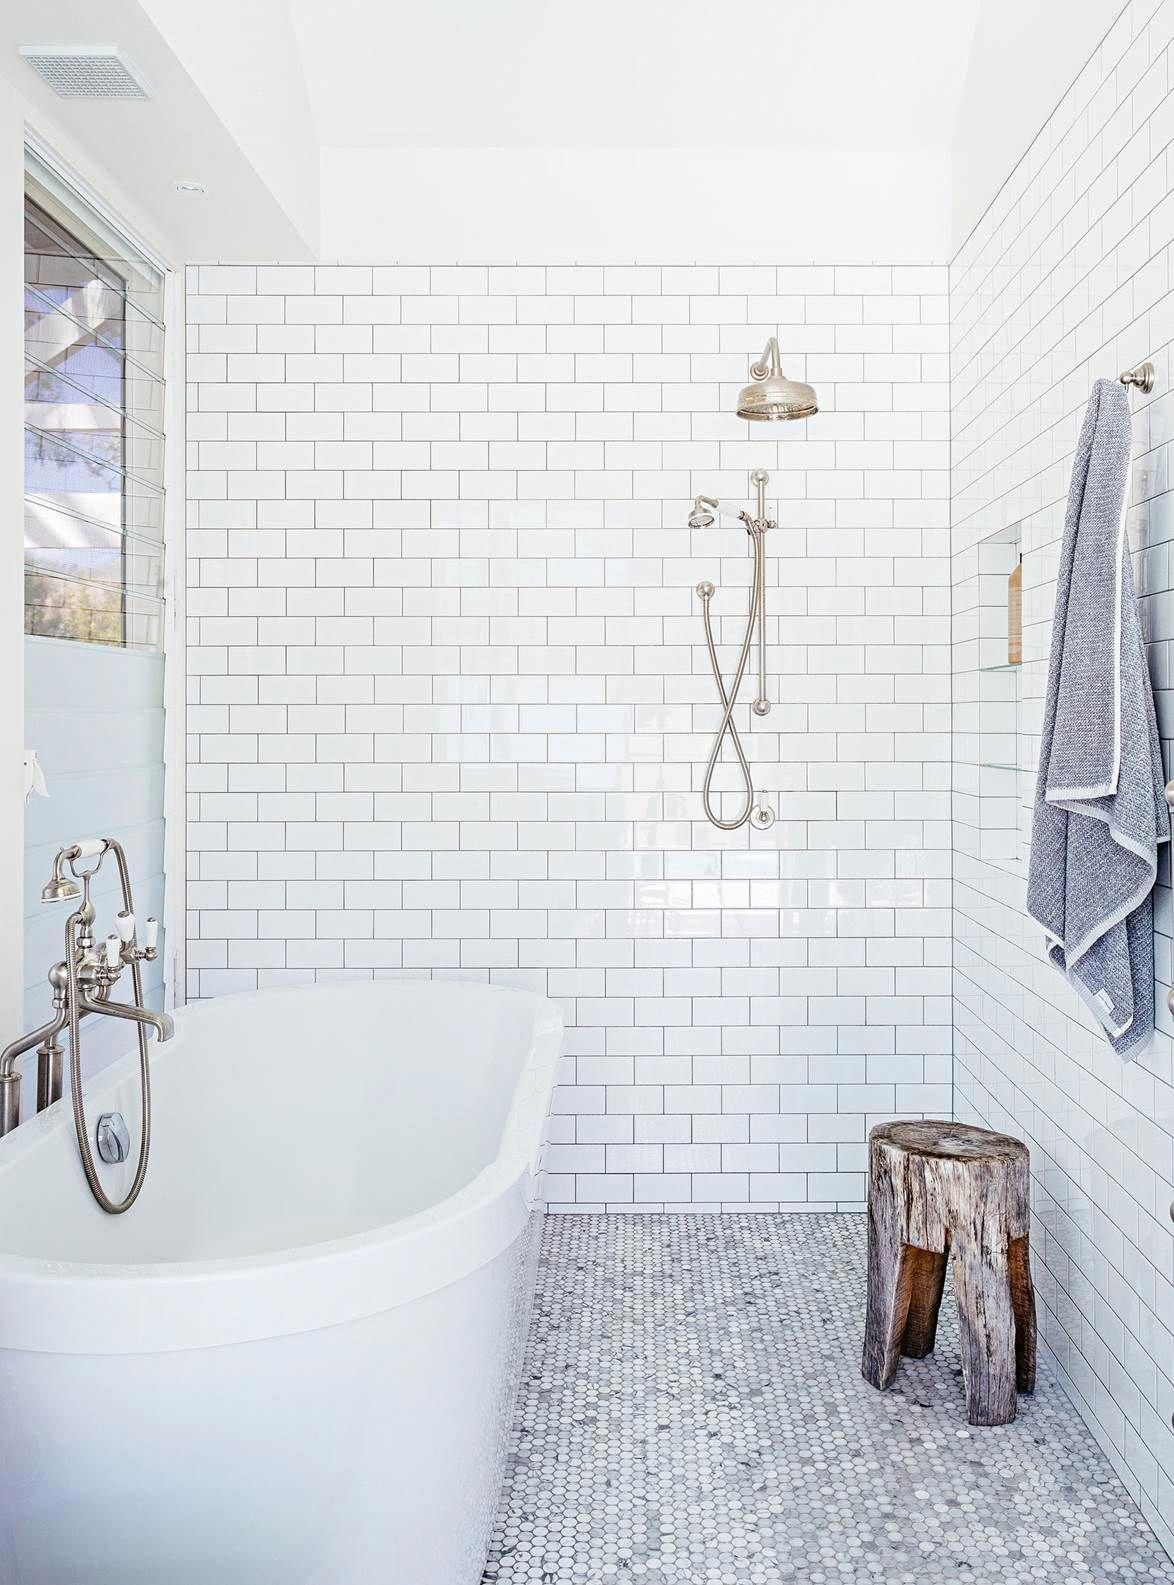 White Bathroom With Subway Tiles Grey Grout And Marble Penny Round Tile Flooring Photogra Penny Round Tiles Subway Tiles Bathroom Penny Round Tile Bathroom